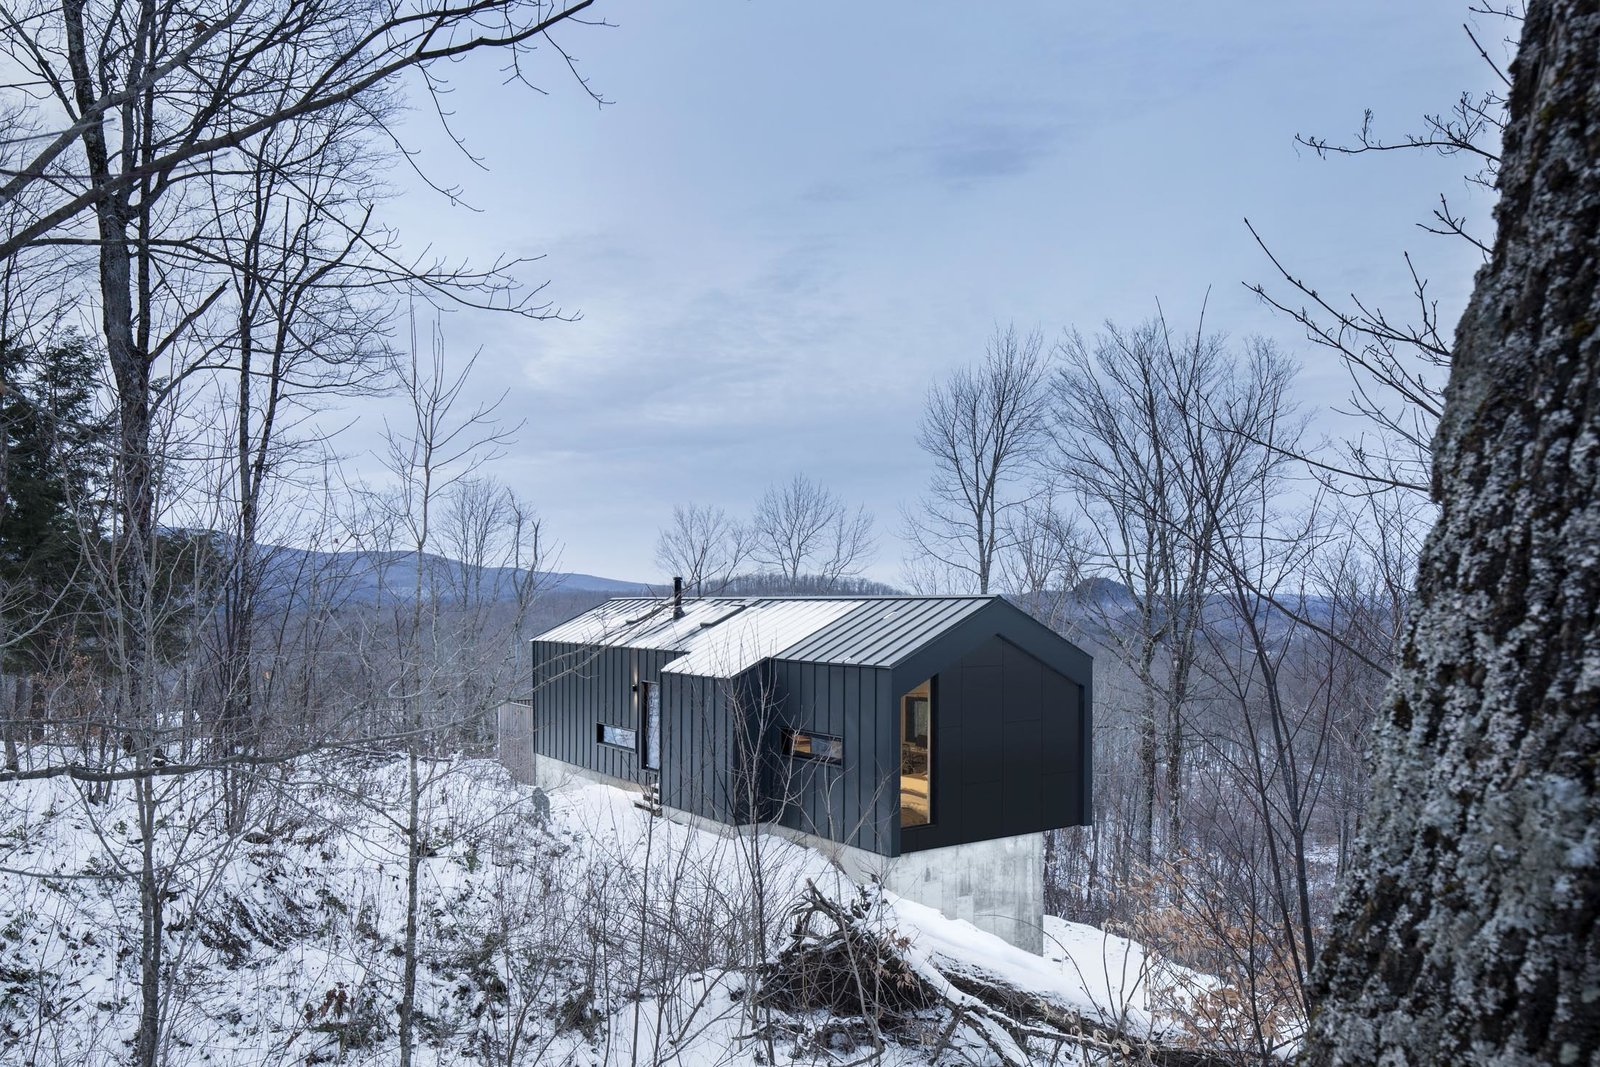 Home In The Mountains amazing cantilevered home in the mountains - dwell